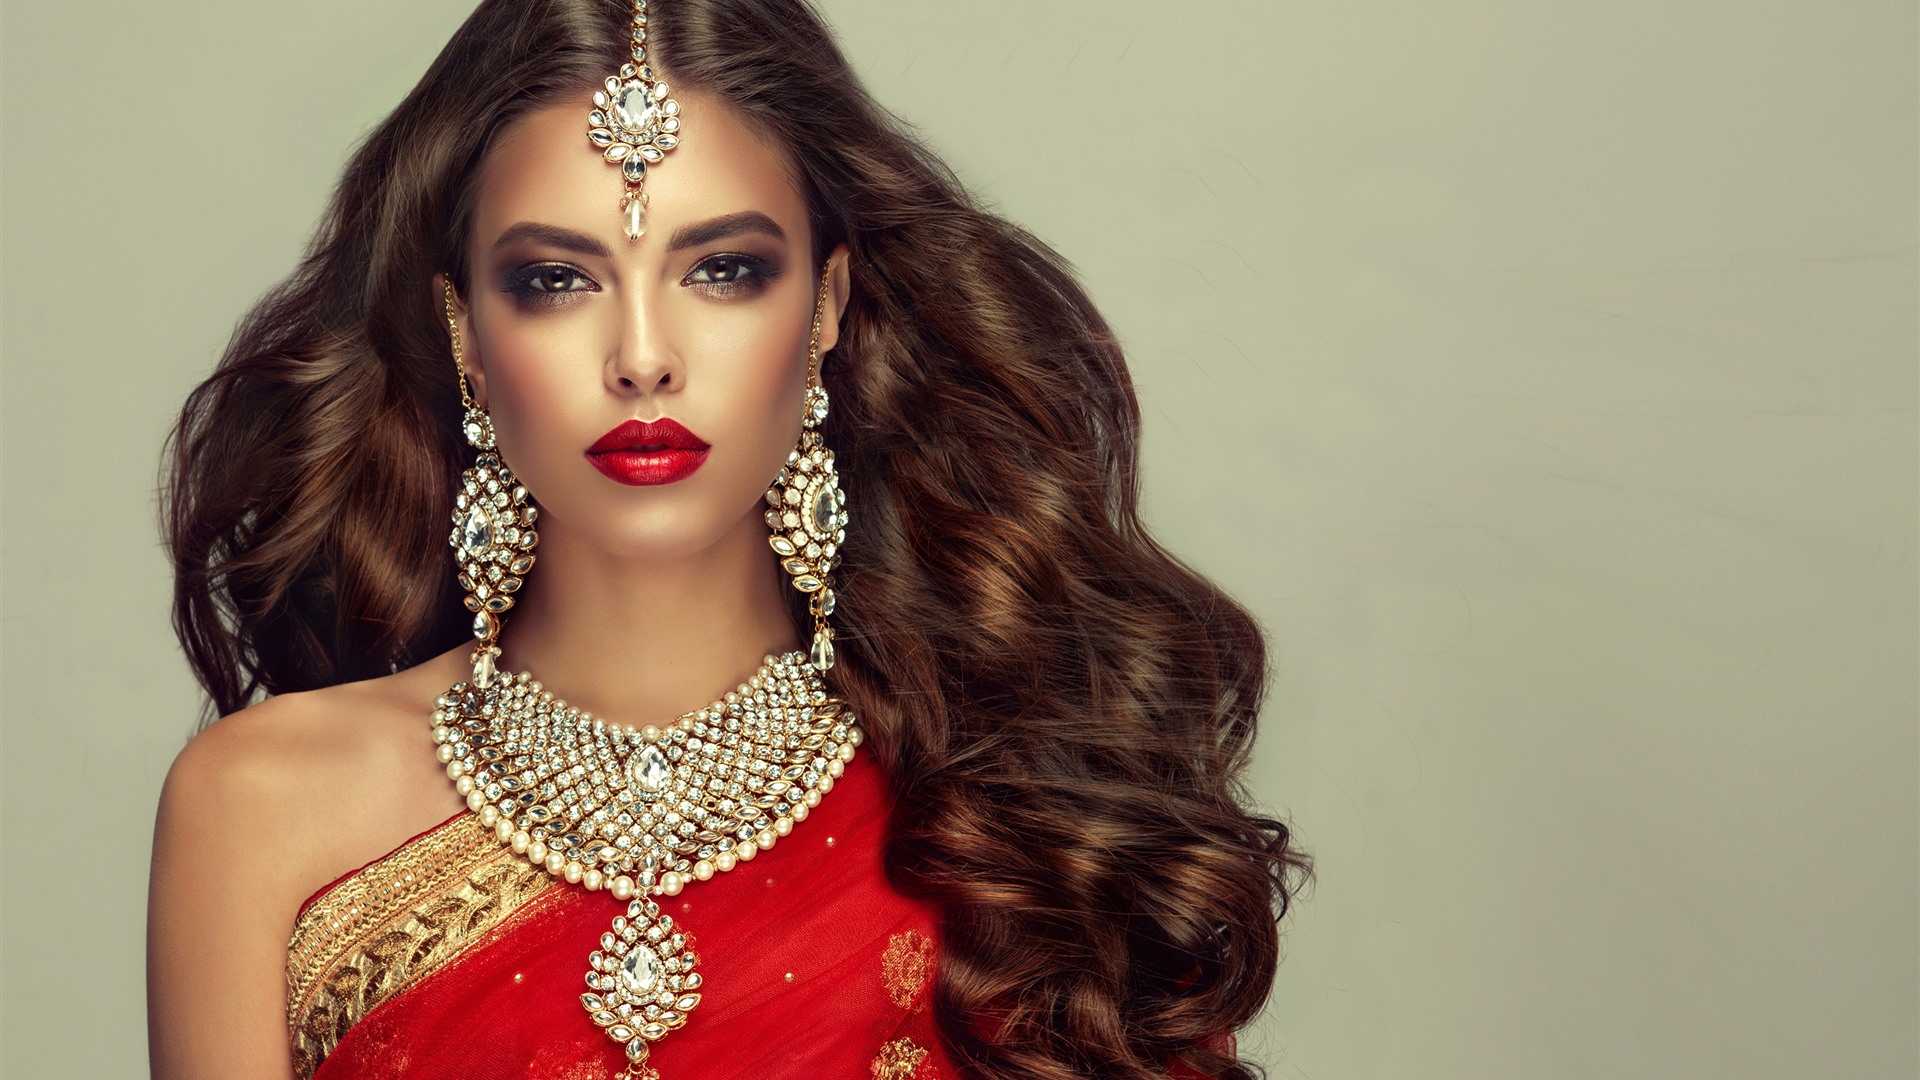 Wallpaper Indian Girl Fashion Hairstyle Necklace Earring